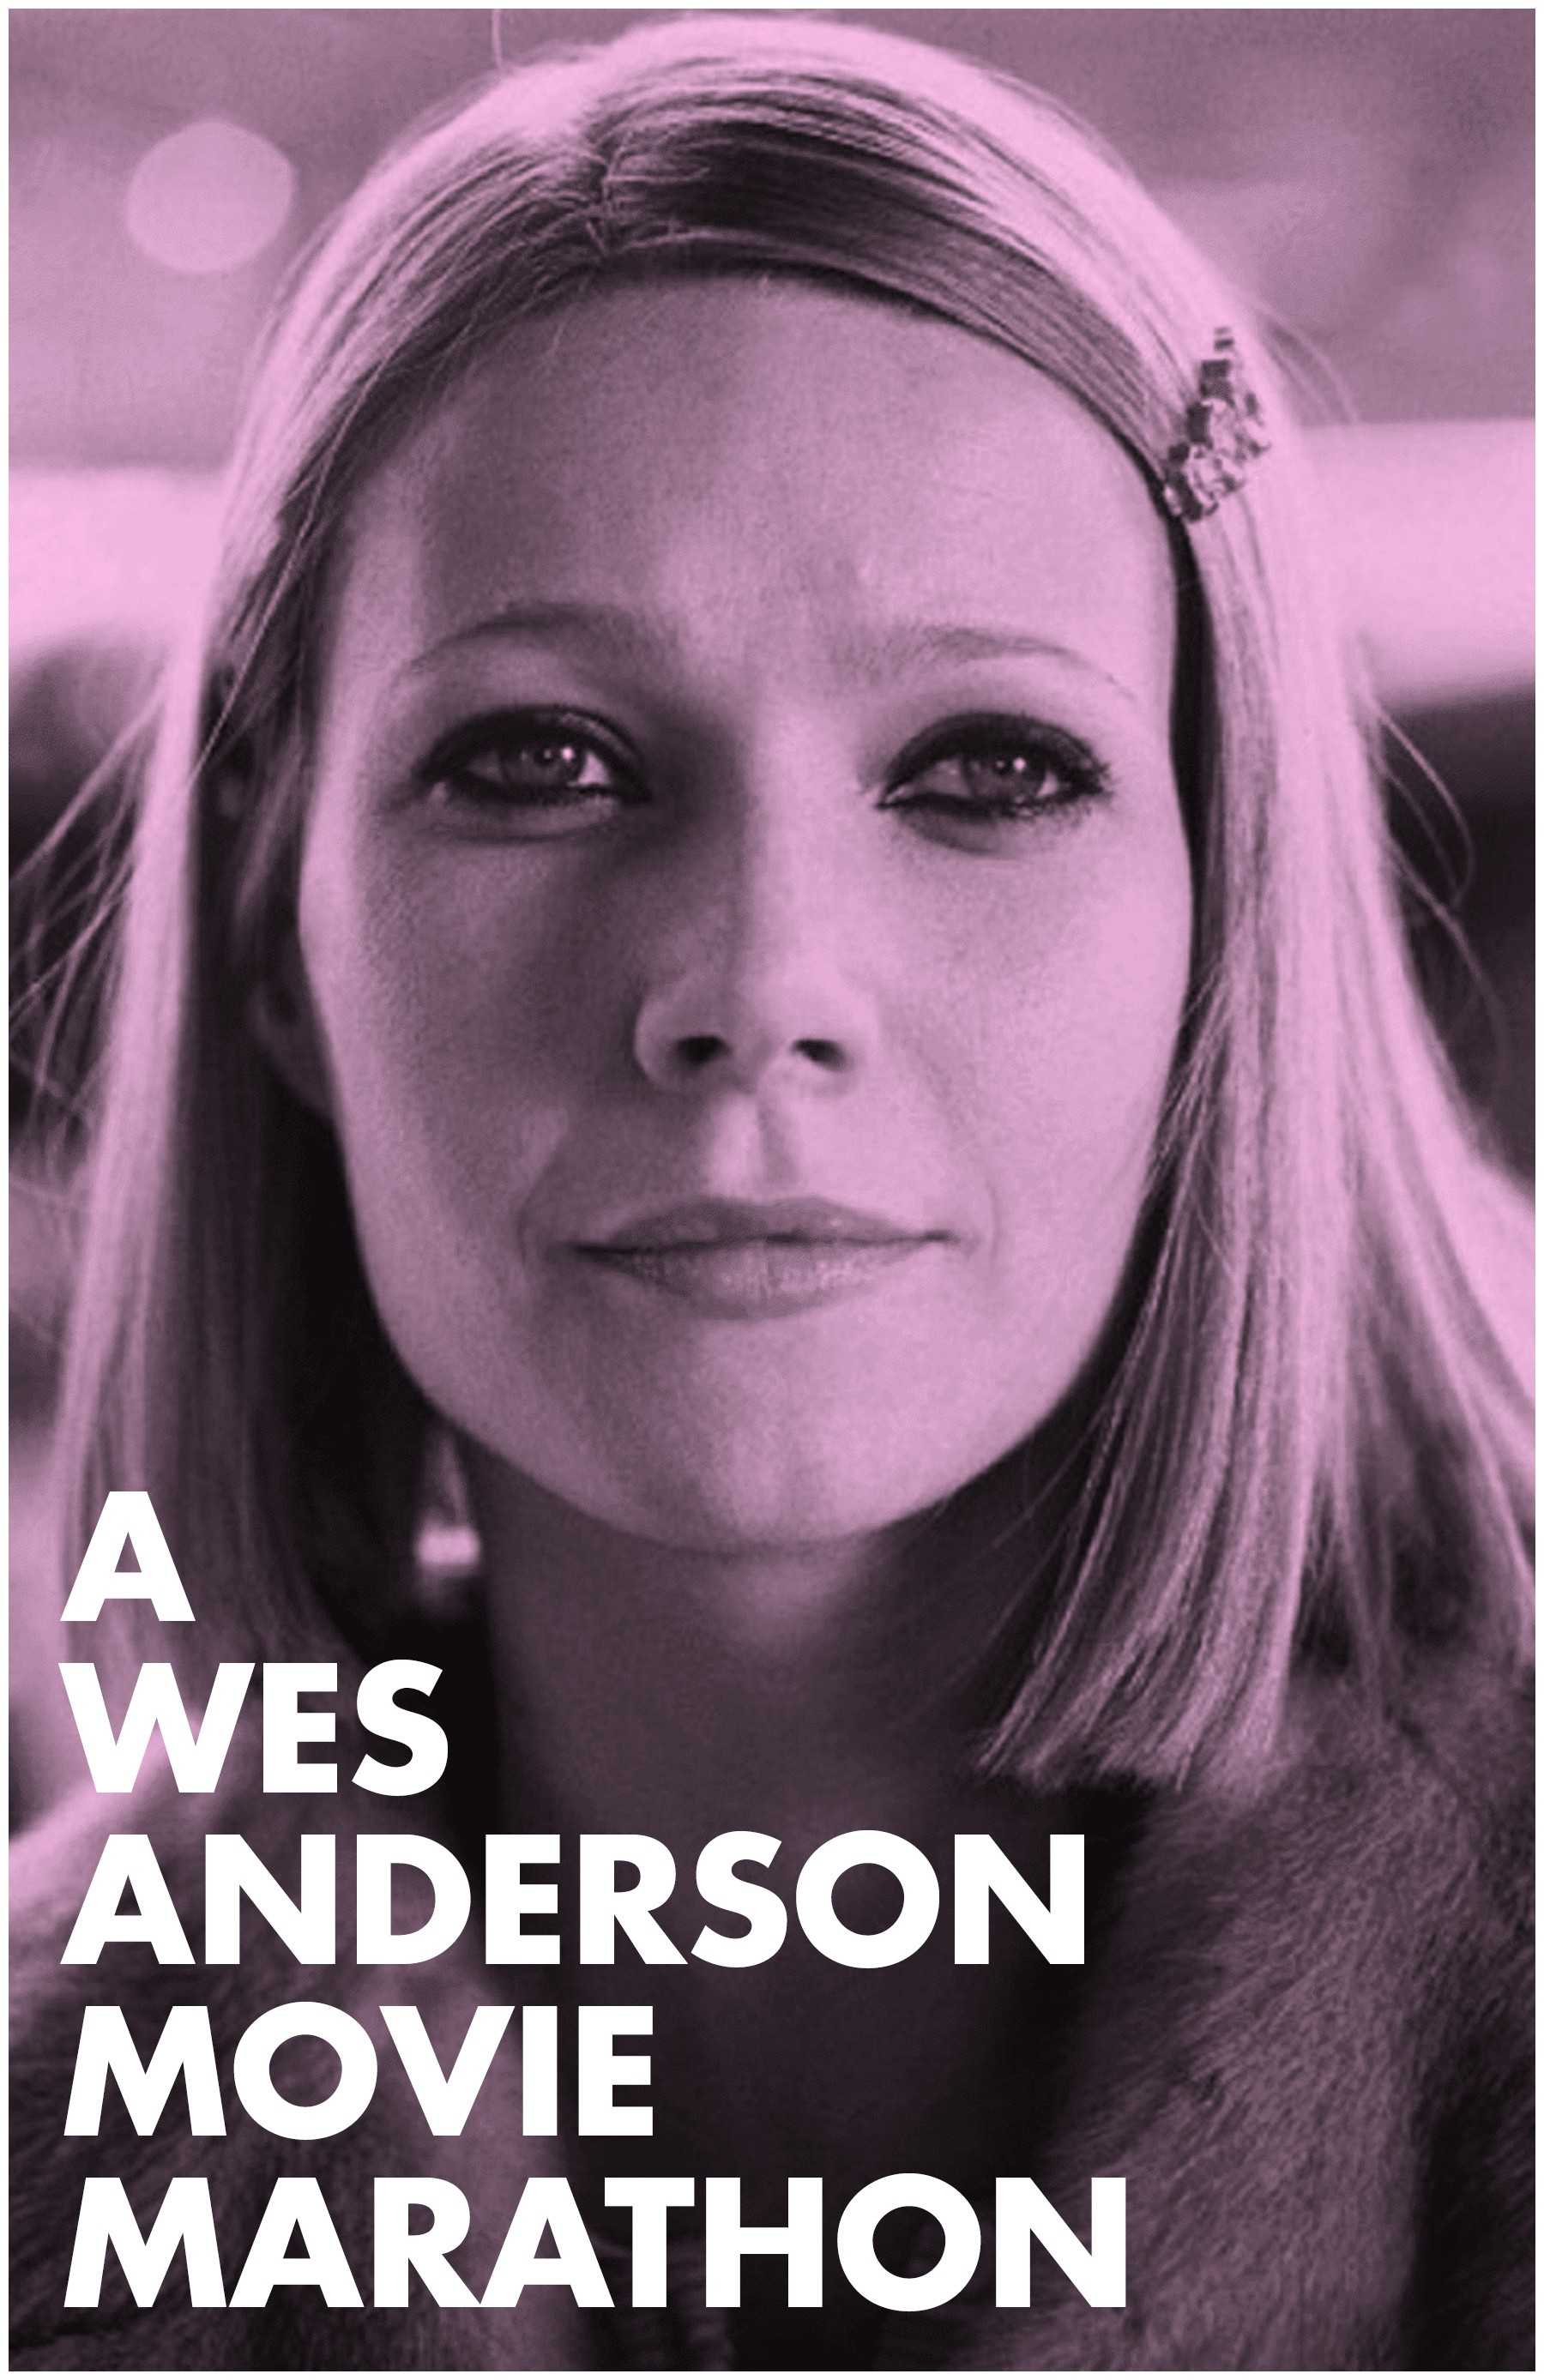 A WES ANDERSON MOVIE MARATHON